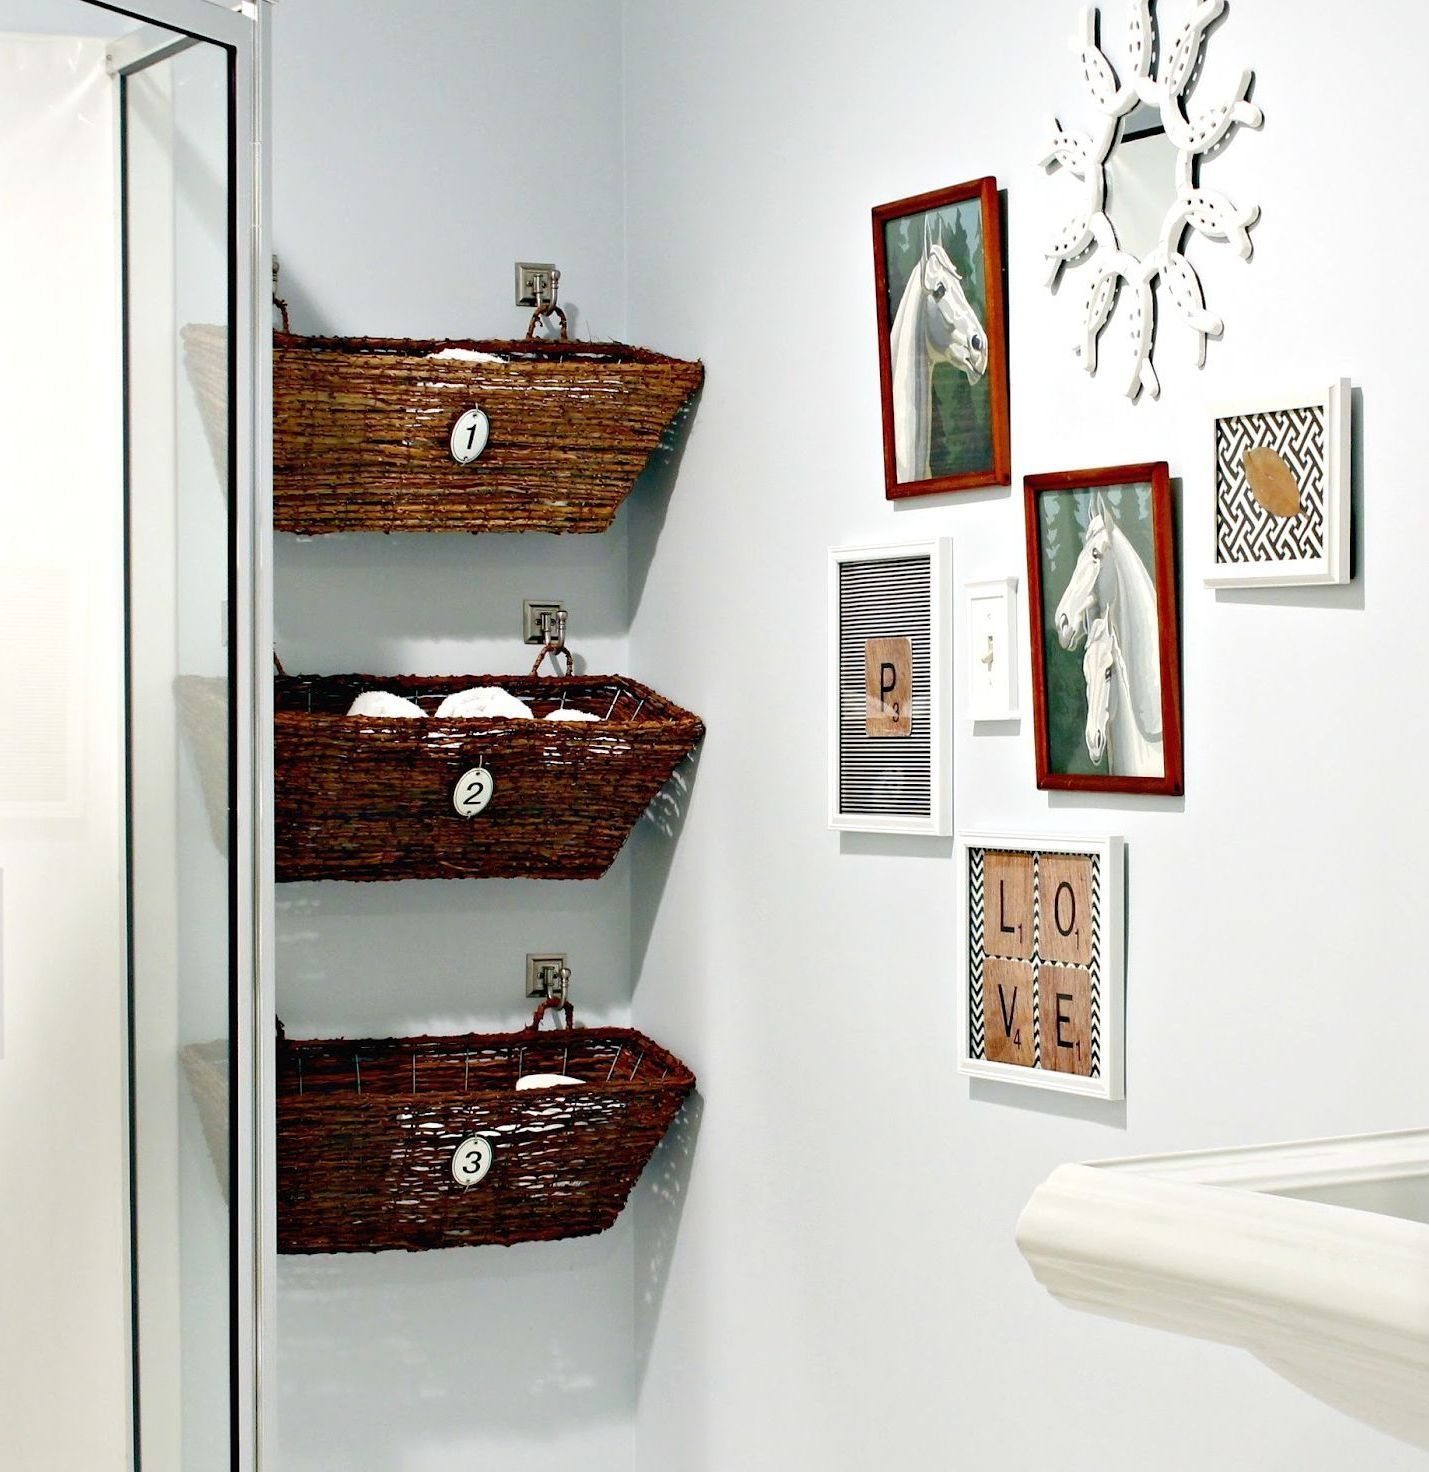 Unique and creative bathroom decor with cute framed wall arts